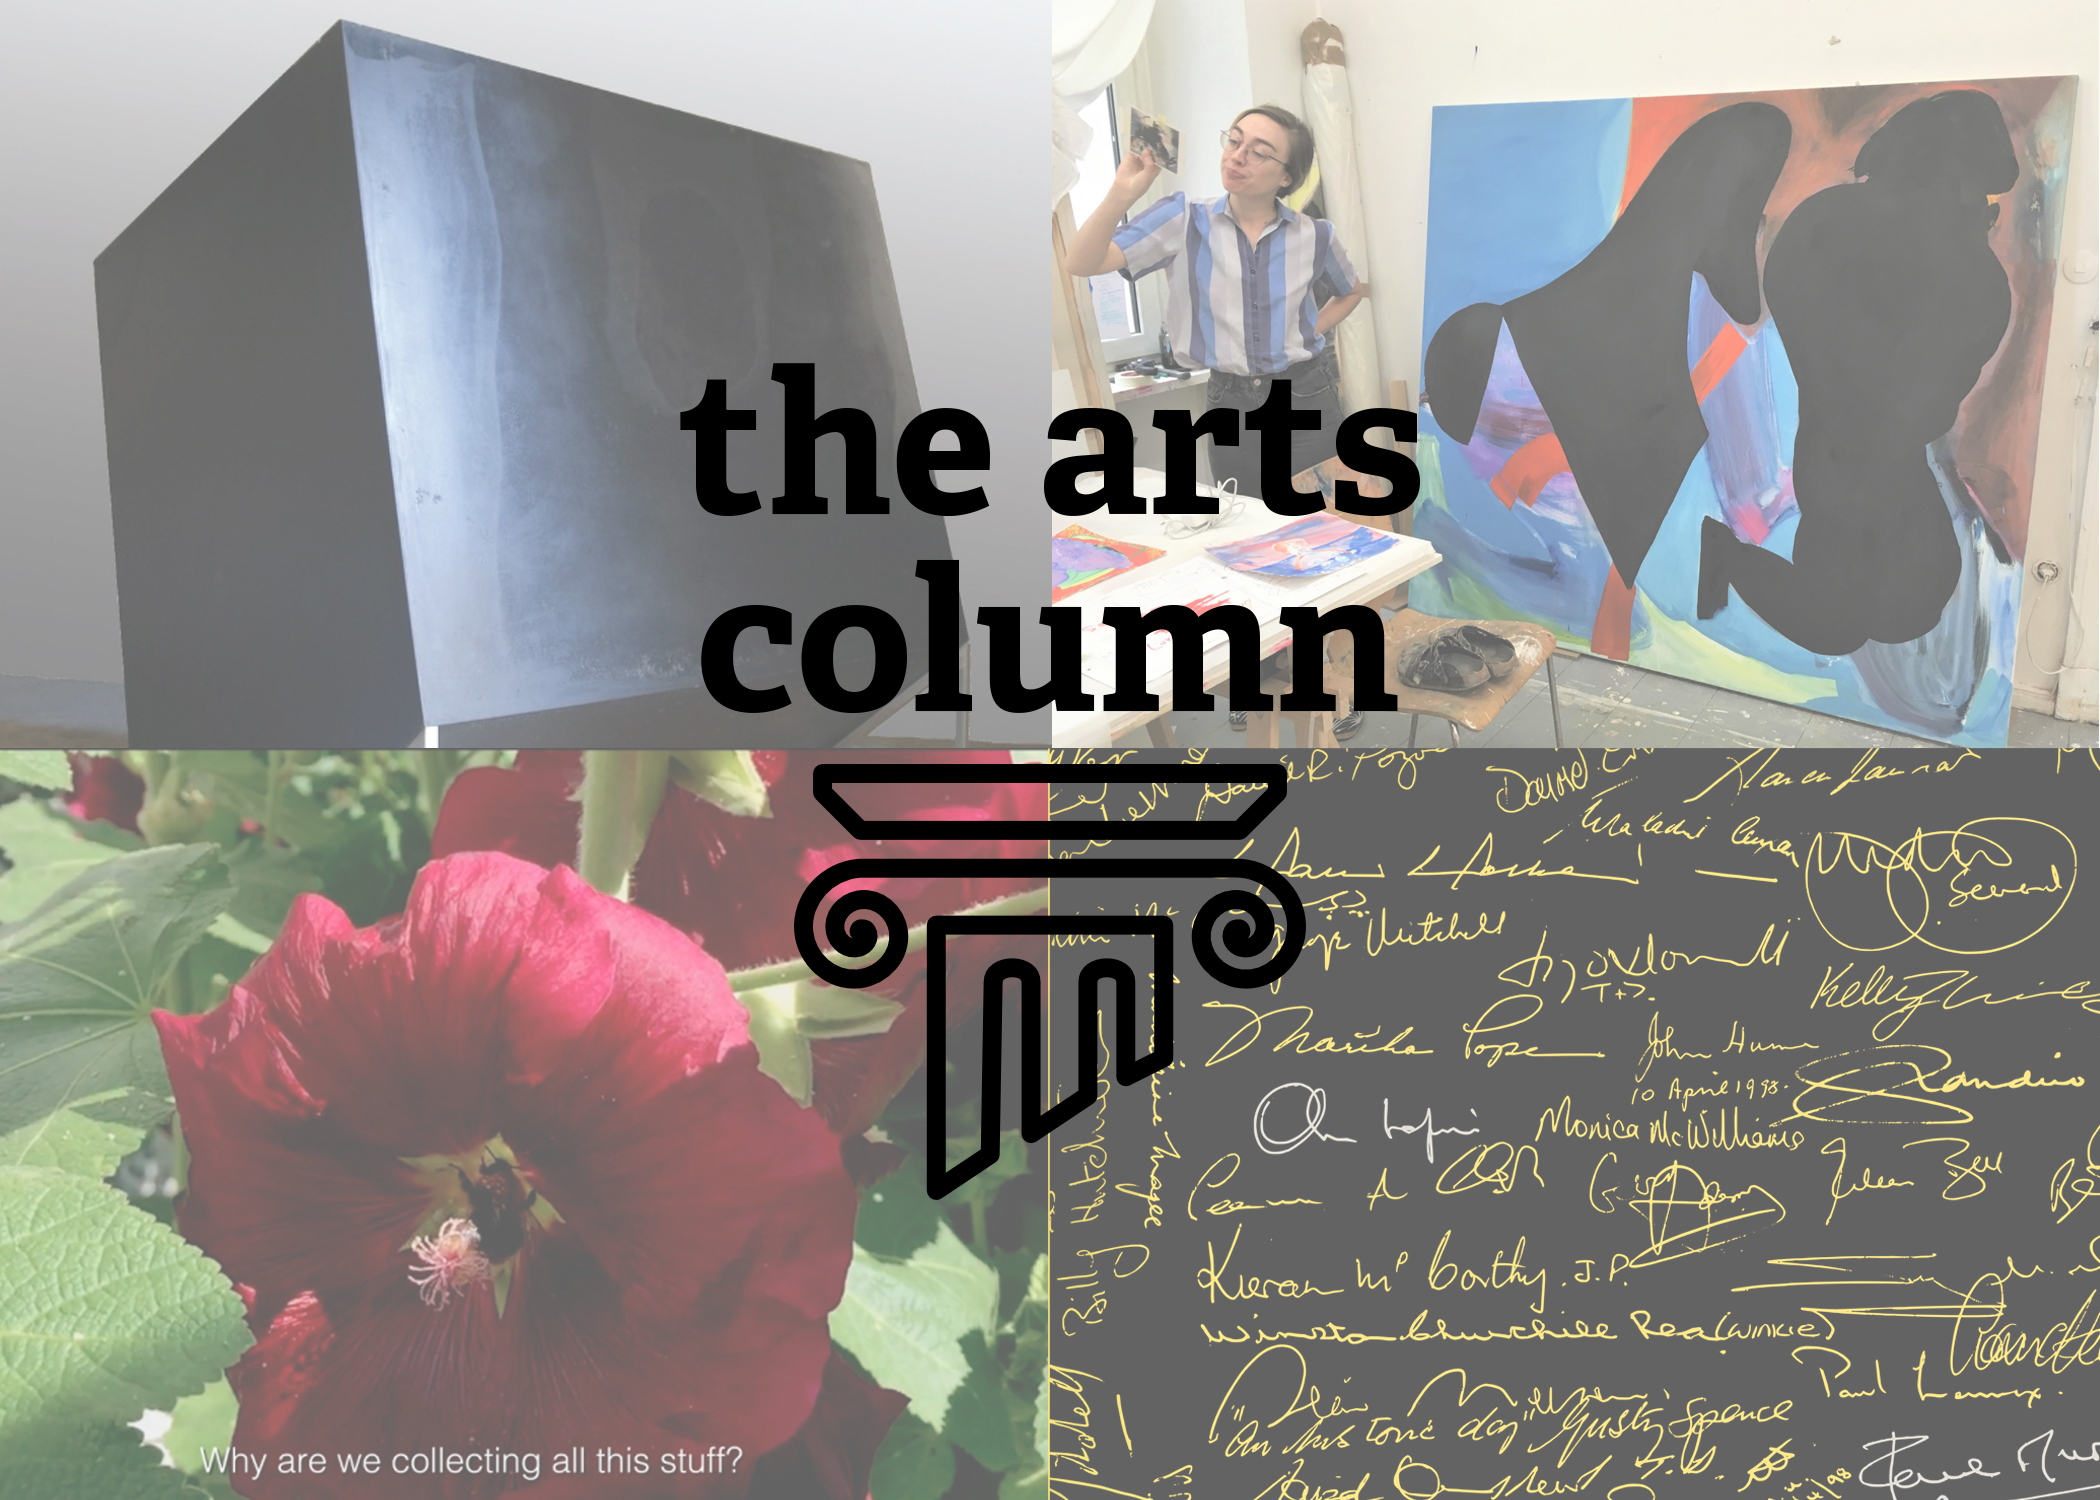 the_arts_column_27